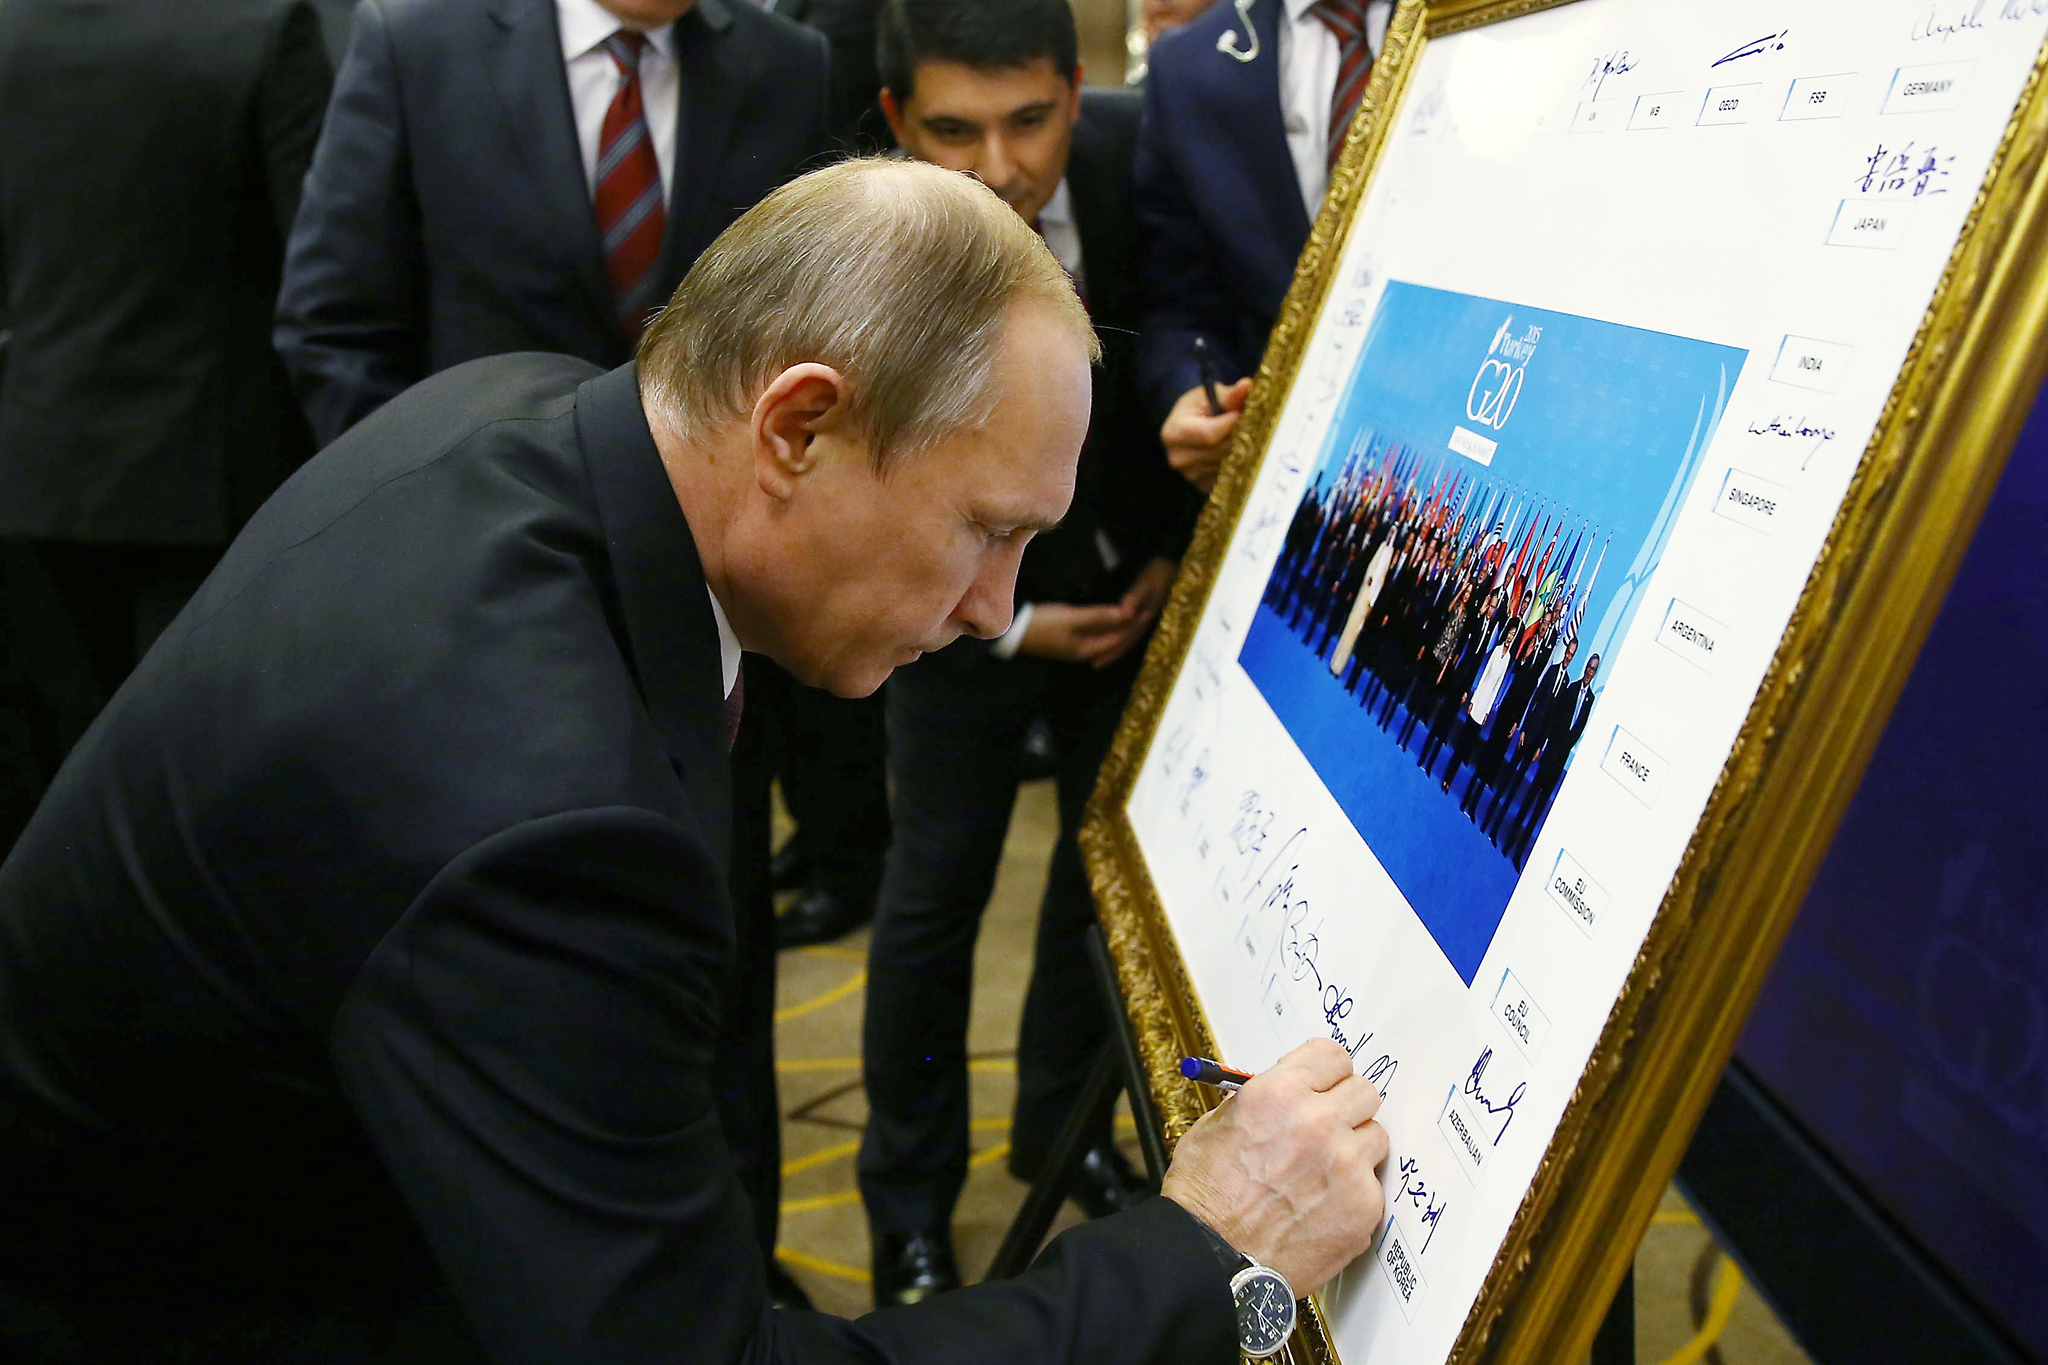 G20 Summit in Antalya...epa05027817 A picture made avaliable on 16 November 2015 shows Russian President Vladimir Putin signs G20 family photo at the G20 Summit  in Antalya, Turkey 15 November 2015. In addition to discussions on the global economy, the G20 grouping of leading nations is set to focus on Syria during its summit this weekend, including the refugee crisis and the threat of terrorism.  EPA/KAYHAN OZER/ ANADOLU AGENCY POOL